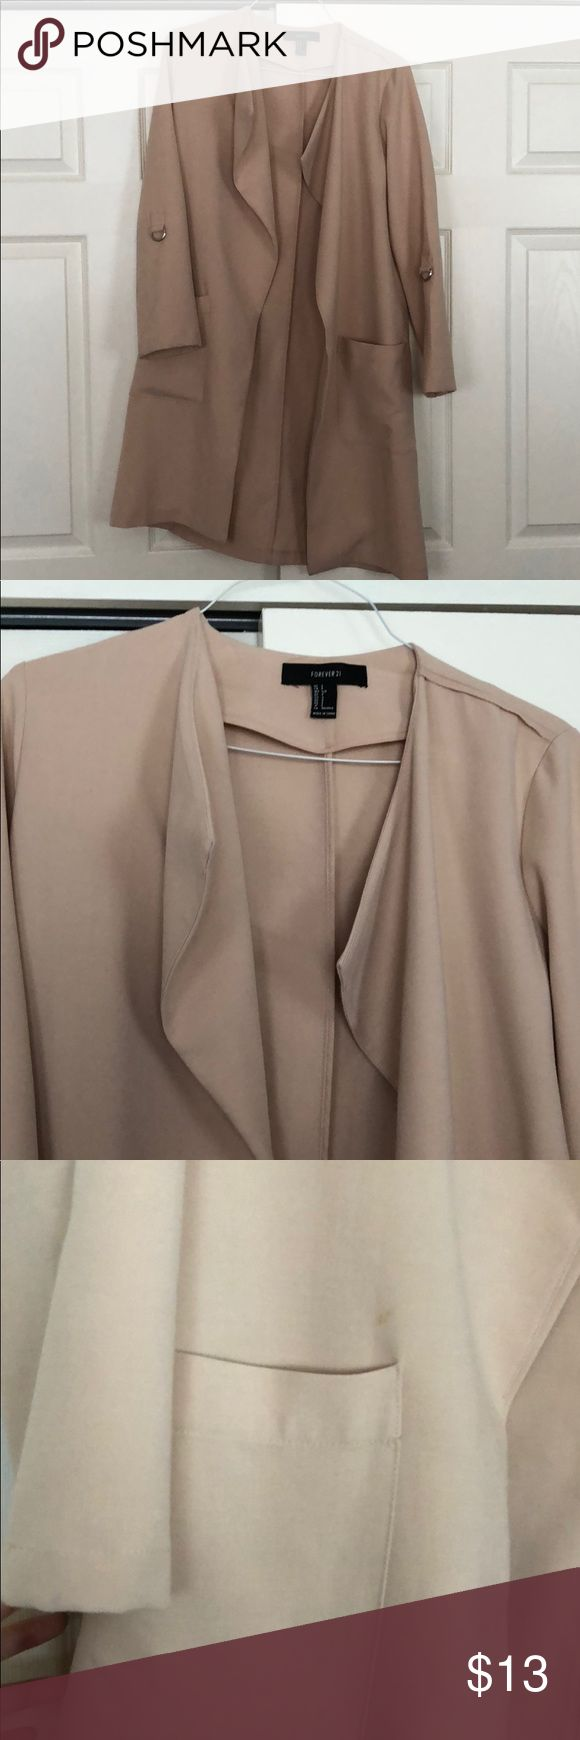 Casual Cream Jacket One of my favorite go-to fall/spring jackets! This light weight cream color jacket is in fair condition, just some mini stains from wear shown in photos. Compliments dresses and everyday outfits very well! Open to trades and offers! Forever 21 Jackets & Coats Pea Coats